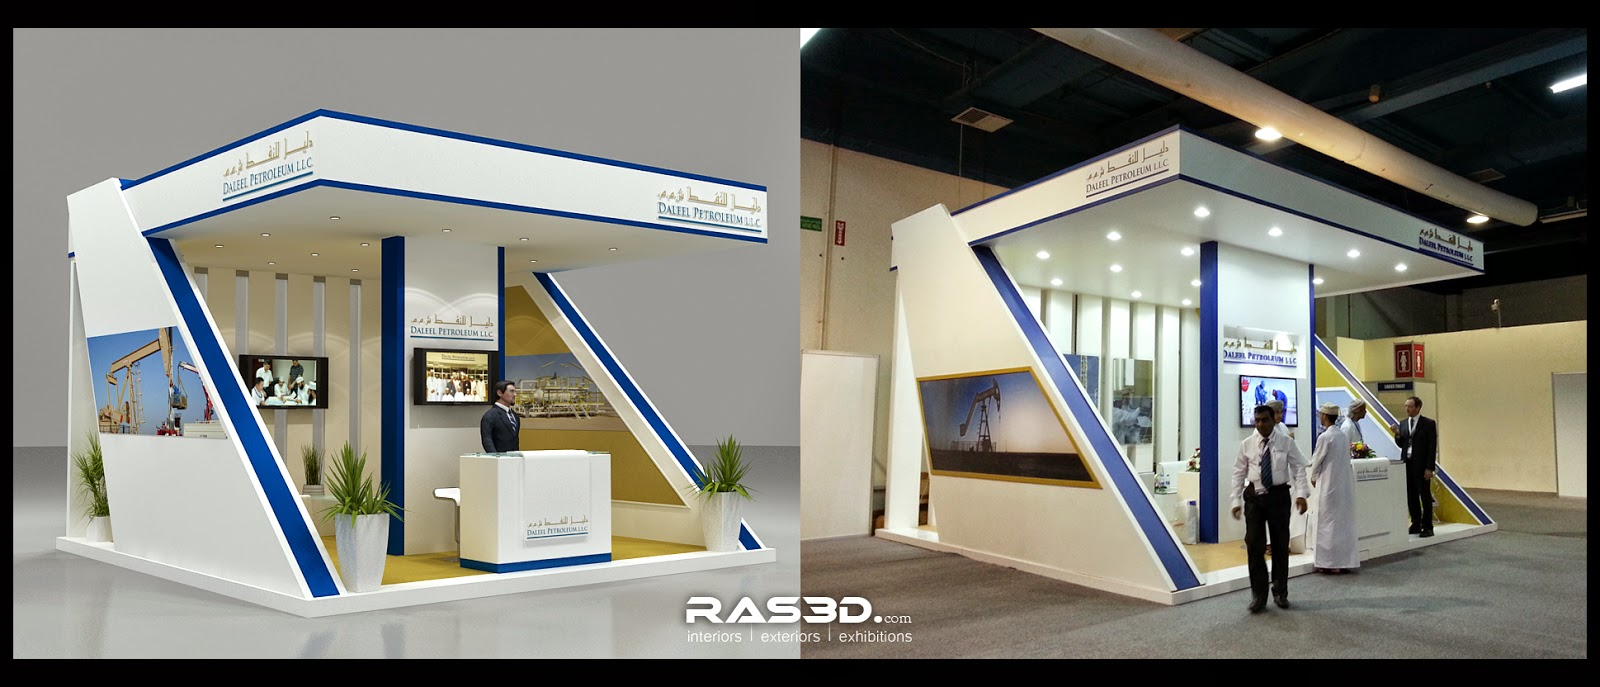 Exhibition Stand Vray : D designer visualizer events exhibitions interiors